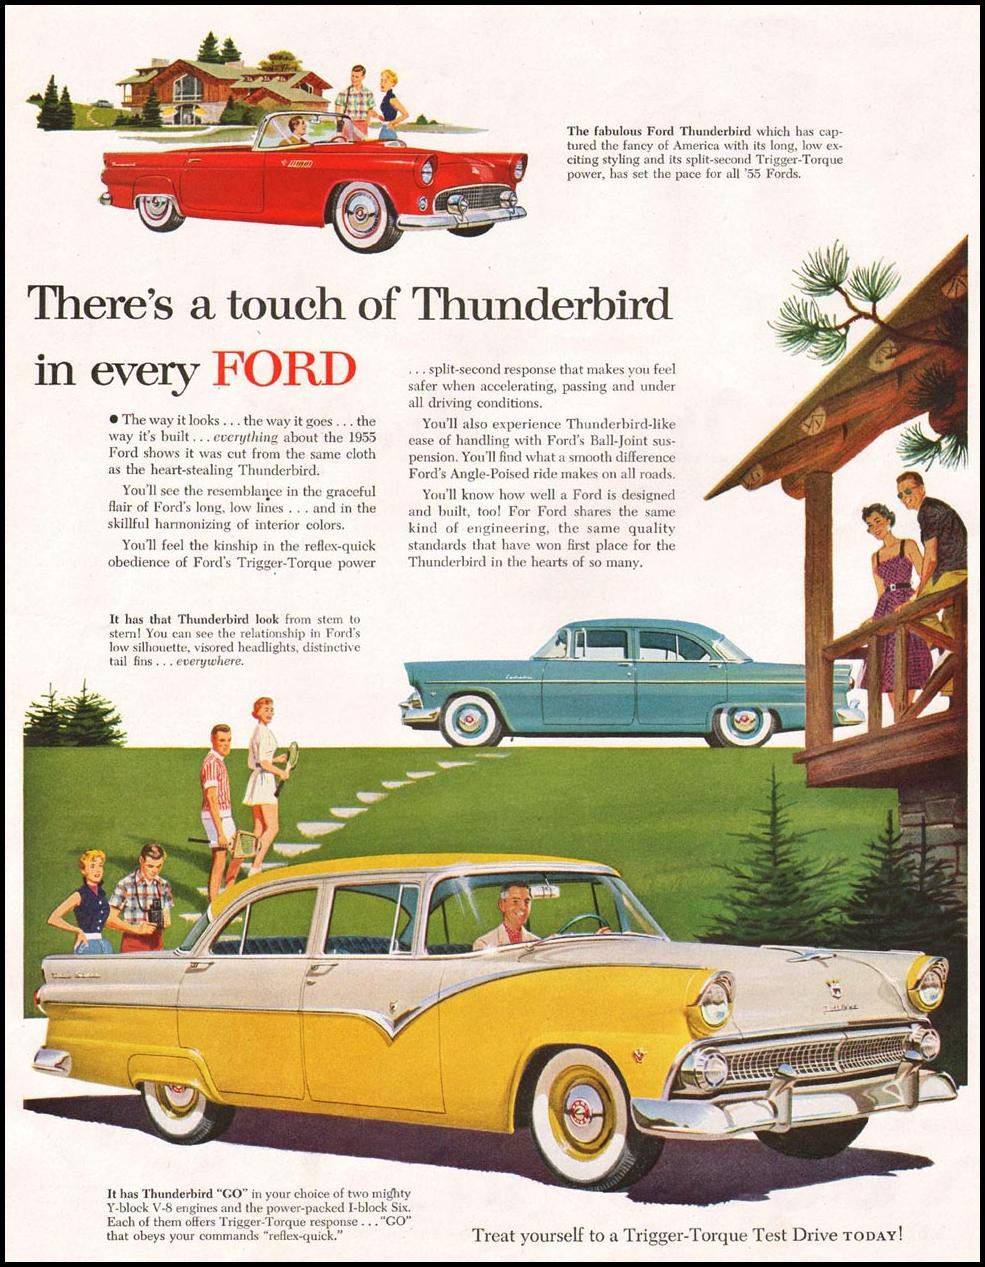 FORD AUTOMOBILES SATURDAY EVENING POST 06/04/1955